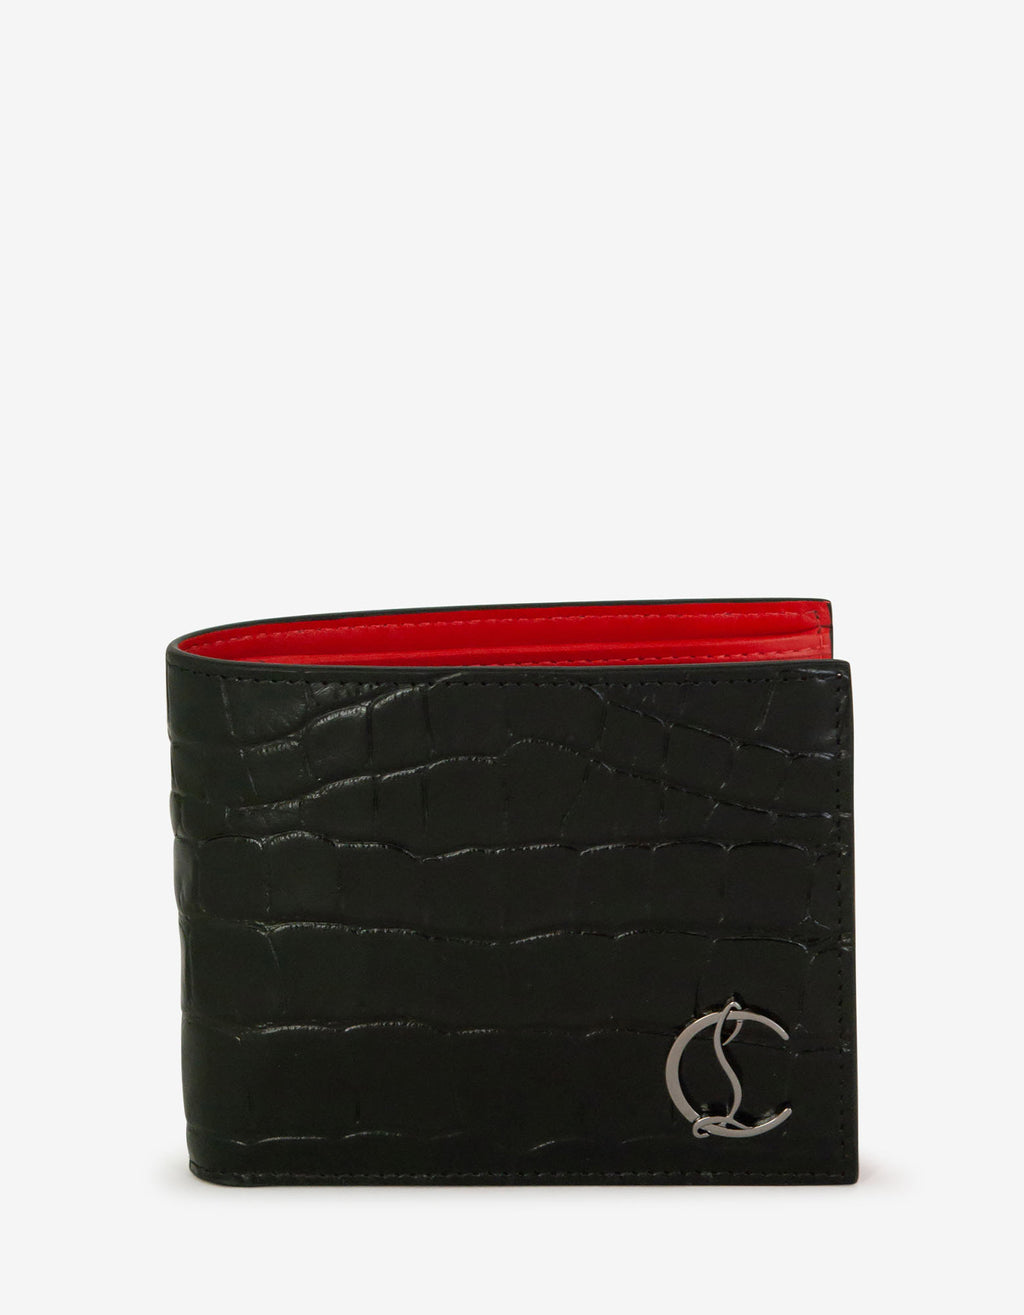 Coolcard Alligator Embossed Leather Billfold Wallet